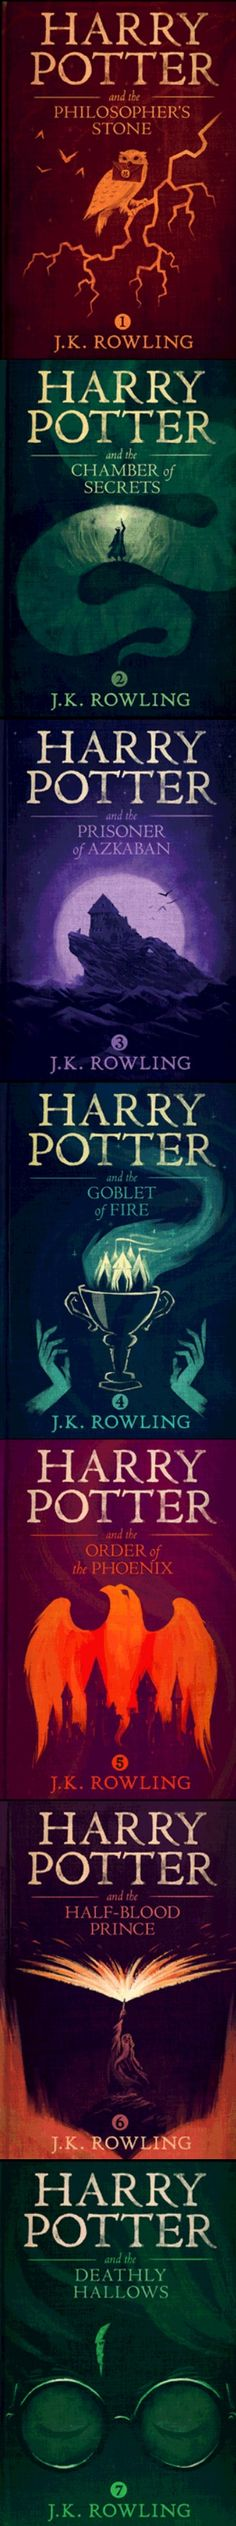 gorgeously reimagined Harry Potter covers by Olly Moss